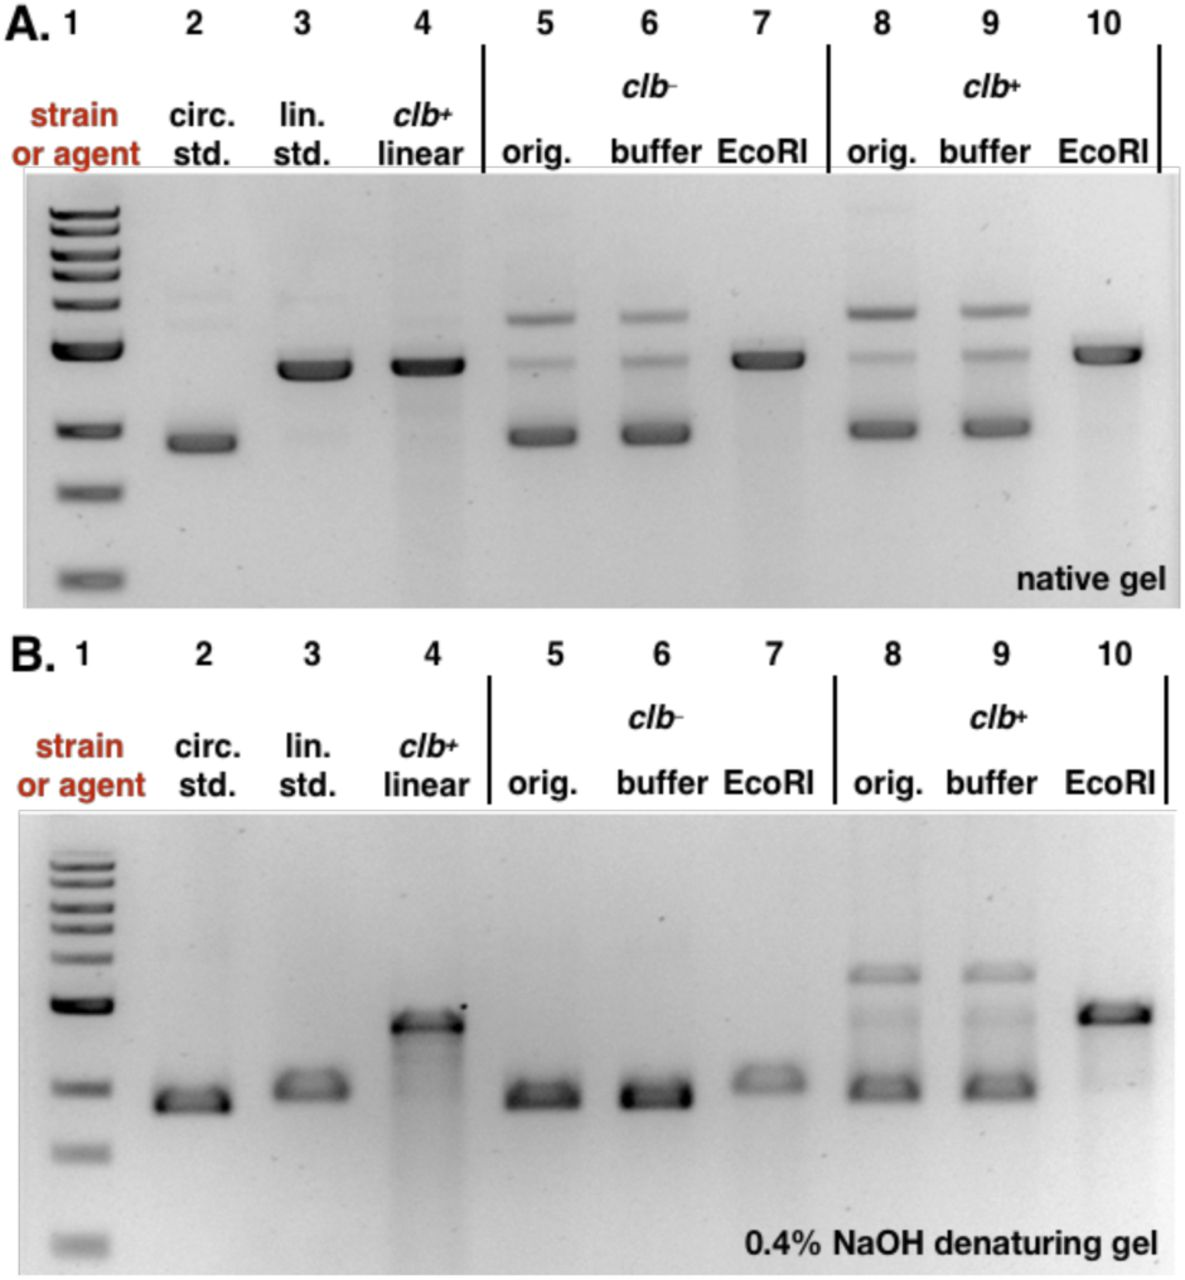 Analysis of pUC19 DNA following treatment with clb − or clb + E. coli and linearization with the restriction enzyme EcoRI. The cross-linked linearized pUC19 DNA isolated from a co-culture with clb + BW25113 E. coli was used a positive control. A. Analysis of DNA by native gel electrophoresis. B. Analysis of DNA by denaturing gel electrophoresis. For both A and B: DNA ladder (Lane #1); circular pUC19 DNA standard (Lane #2); linearized pUC19 DNA standard (Lane # 3); linearized pUC19 DNA co-cultured with clb + BW25113 E. coli (Lane #4); circular pUC19 DNA isolated from co-culture with clb − BW25113 E. coli (Lane #5), reacted with buffer (Lane #6), reacted with EcoRI restriction enzyme (Lane #7); circular pUC19 DNA isolated from co-culture with clb + BW25113 E. coli (Lane #8), reacted with buffer (Lane #9), reacted with EcoRI restriction enzyme (Lane #10). Conditions (Lane #4): linearized pUC19 DNA, clb + BW25113 E. coli , M9-CA media, 4 h at 37 °C. Conditions (Lane #5–#7): circular pUC19 DNA isolated from co-culture with clb − BW25113 E. coli in M9-CA media for 4 h at 37 °C (Lane #5); the DNA (15.4 µM base pair) was reacted with CutSmart Buffer® (New England Biolabs®), pH 7.9, at 37 °C for 30 minutes (Lane #6); the DNA (15.4 µM base pair) was reacted with 20 units of EcoRI-HF restriction enzyme in CutSmart Buffer® (New England Biolabs®), pH 7.9, at 37 °C for 30 minutes (Lane #7). Conditions (Lane #8–#10): circular pUC19 DNA isolated from co-culture with BW25113 clb + E. coli. in in M9-CA media for 4 h at 37 °C (Lane # 8); the DNA (15.4 µM base pair) was reacted with CutSmart Buffer® (New England Biolabs®), pH 7.9, at 37 °C for 30 minutes (Lane #9); the DNA (15.4 µM base pair) was reacted with 20 units of EcoRI-HF restriction enzyme in CutSmart Buffer® (New England Biolabs®), pH 7.9, at 37 °C for 30 minutes (Lane #10). The DNA was isolated and analyzed by native ( Fig. 5A ) or 0.4% NaOH denaturing ( Fig. 5B ) agarose gel electrophoresis (90 V, 1.5 h).